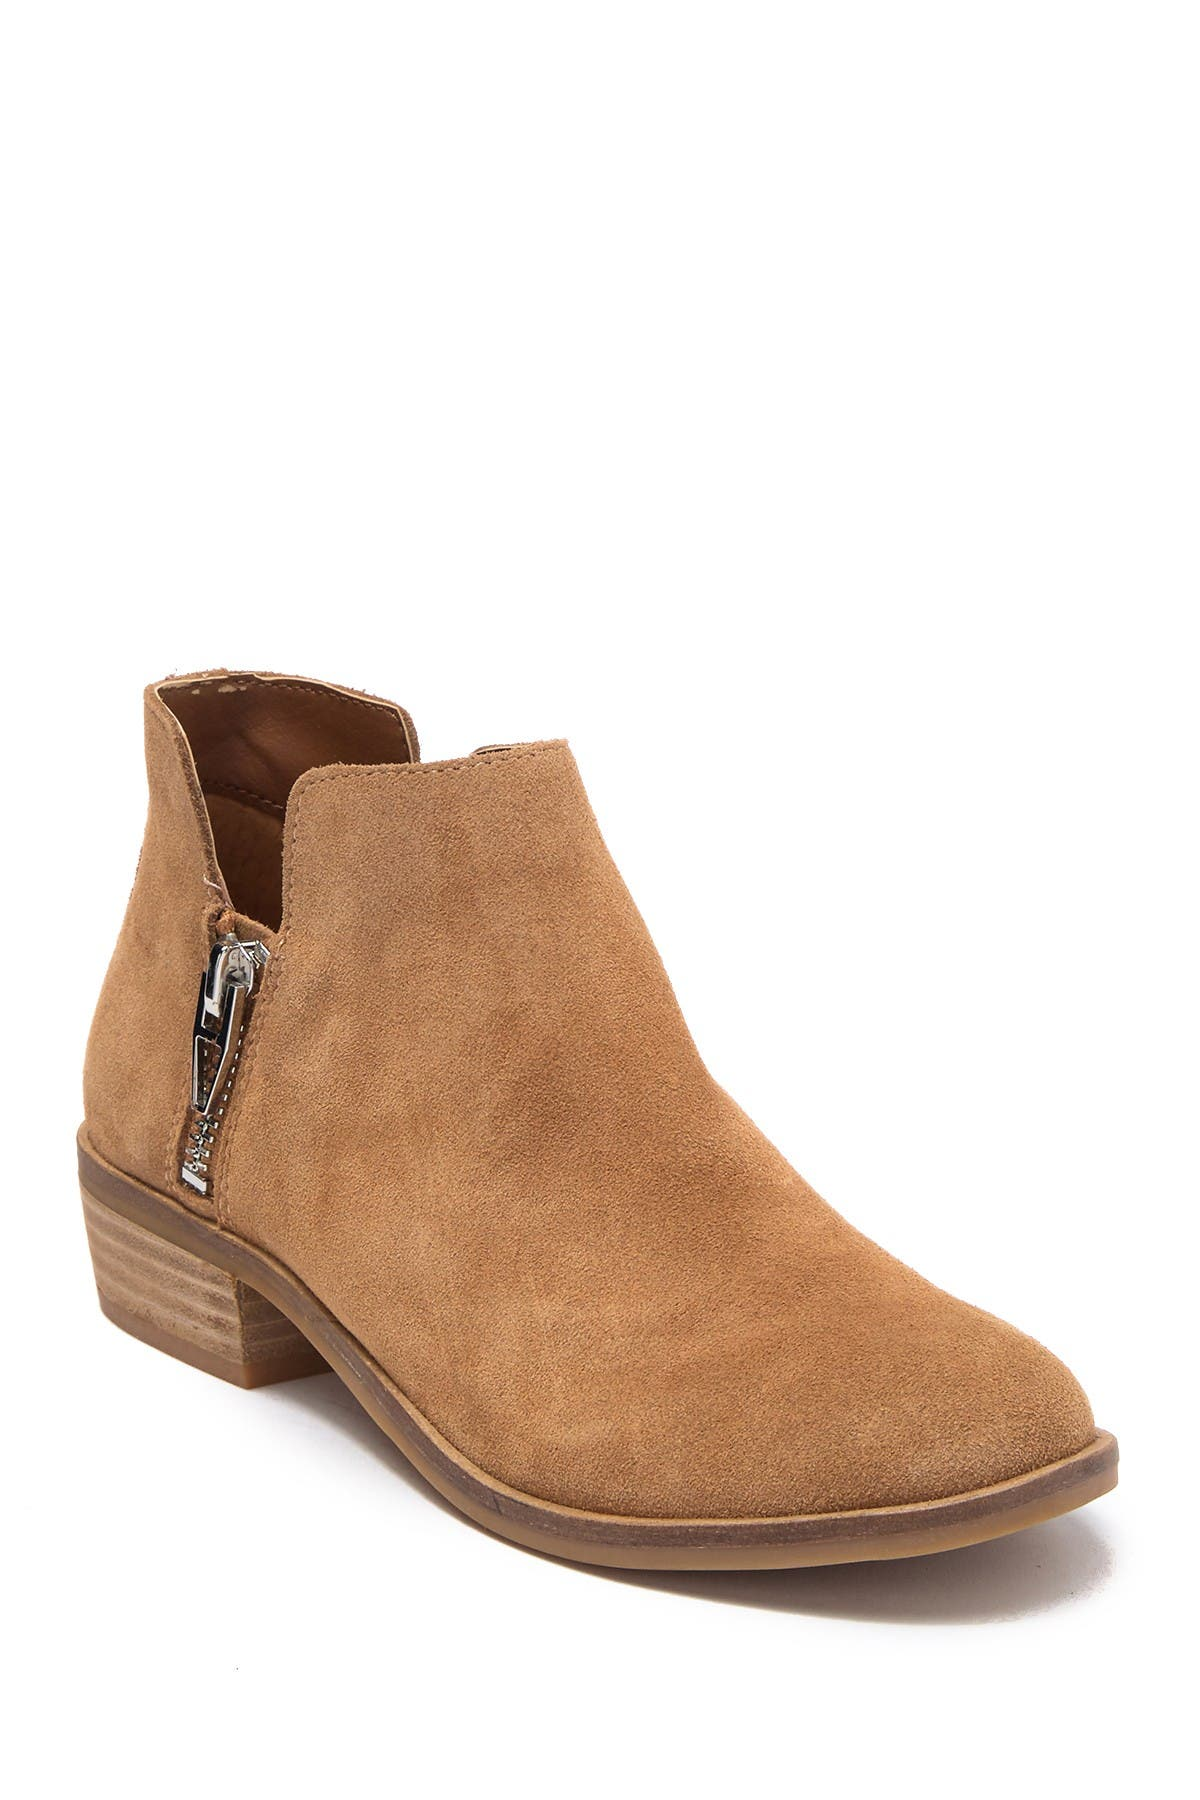 Image of Dolce Vita Sada Suede Ankle Bootie